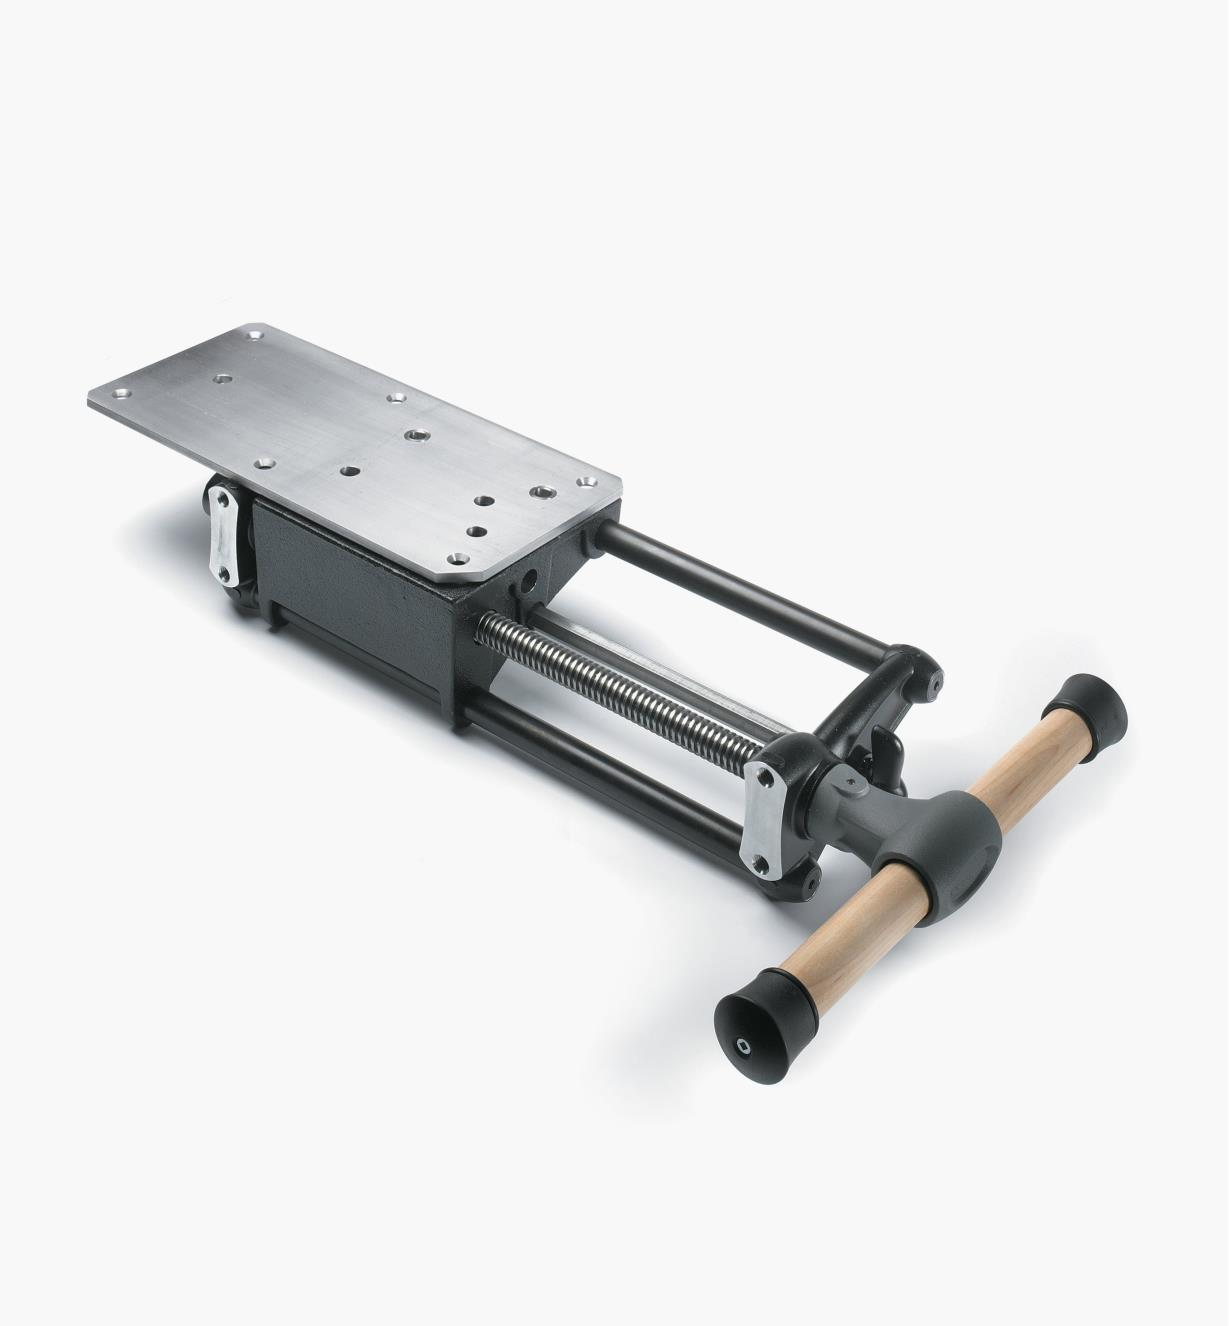 05G3001 - Veritas Quick-Release Sliding Tail Vise